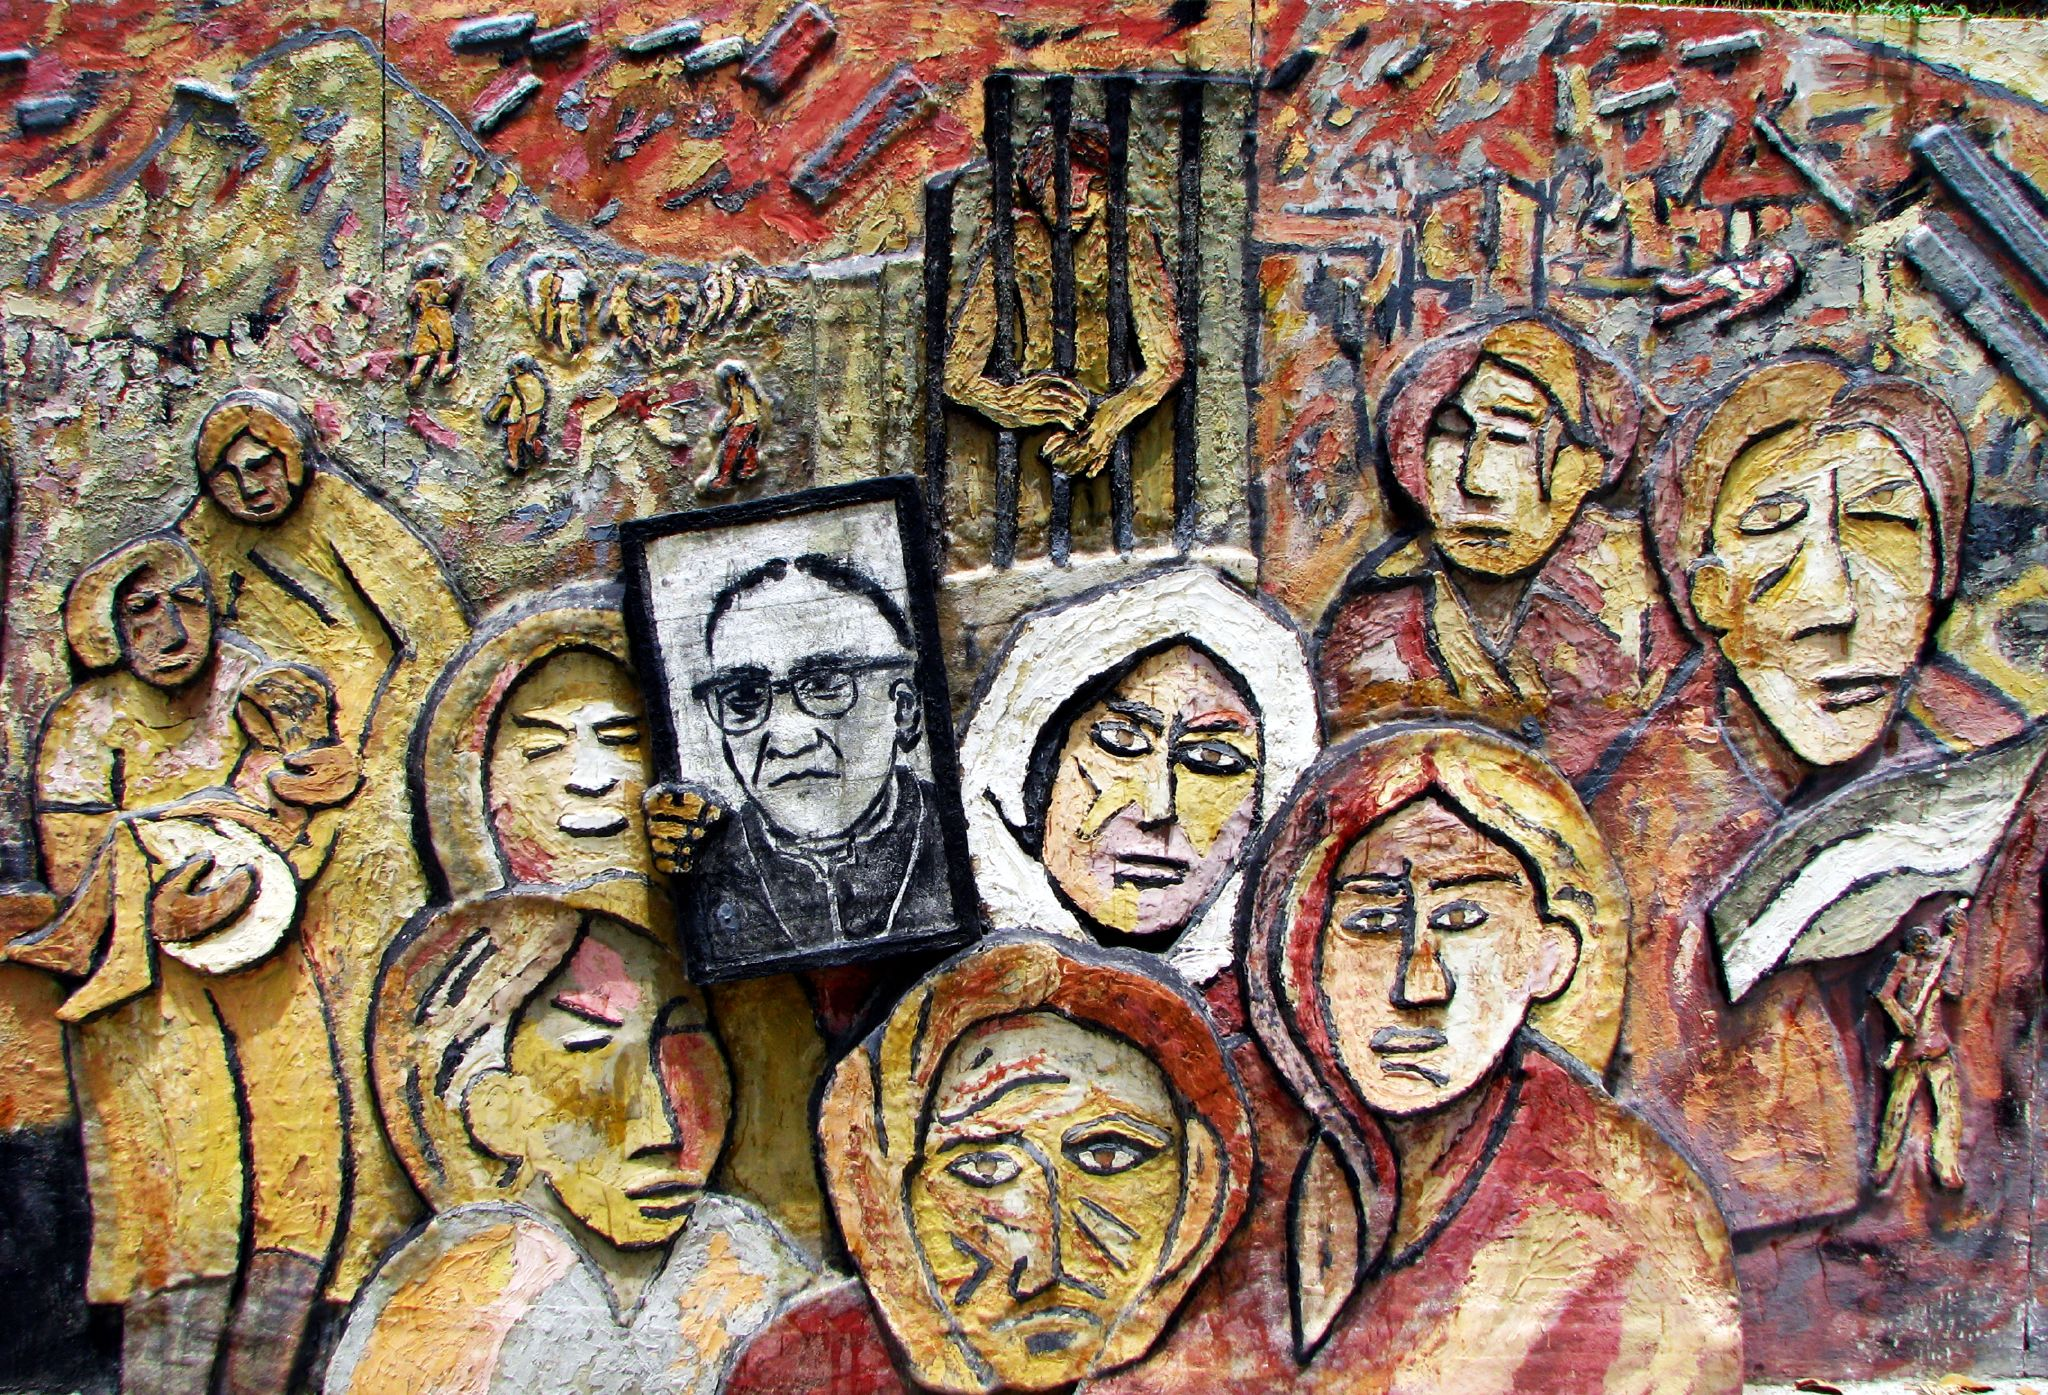 Archbishop Romero was killed in 1980 after he spoke out against U.S. support of the Salvadoran military.